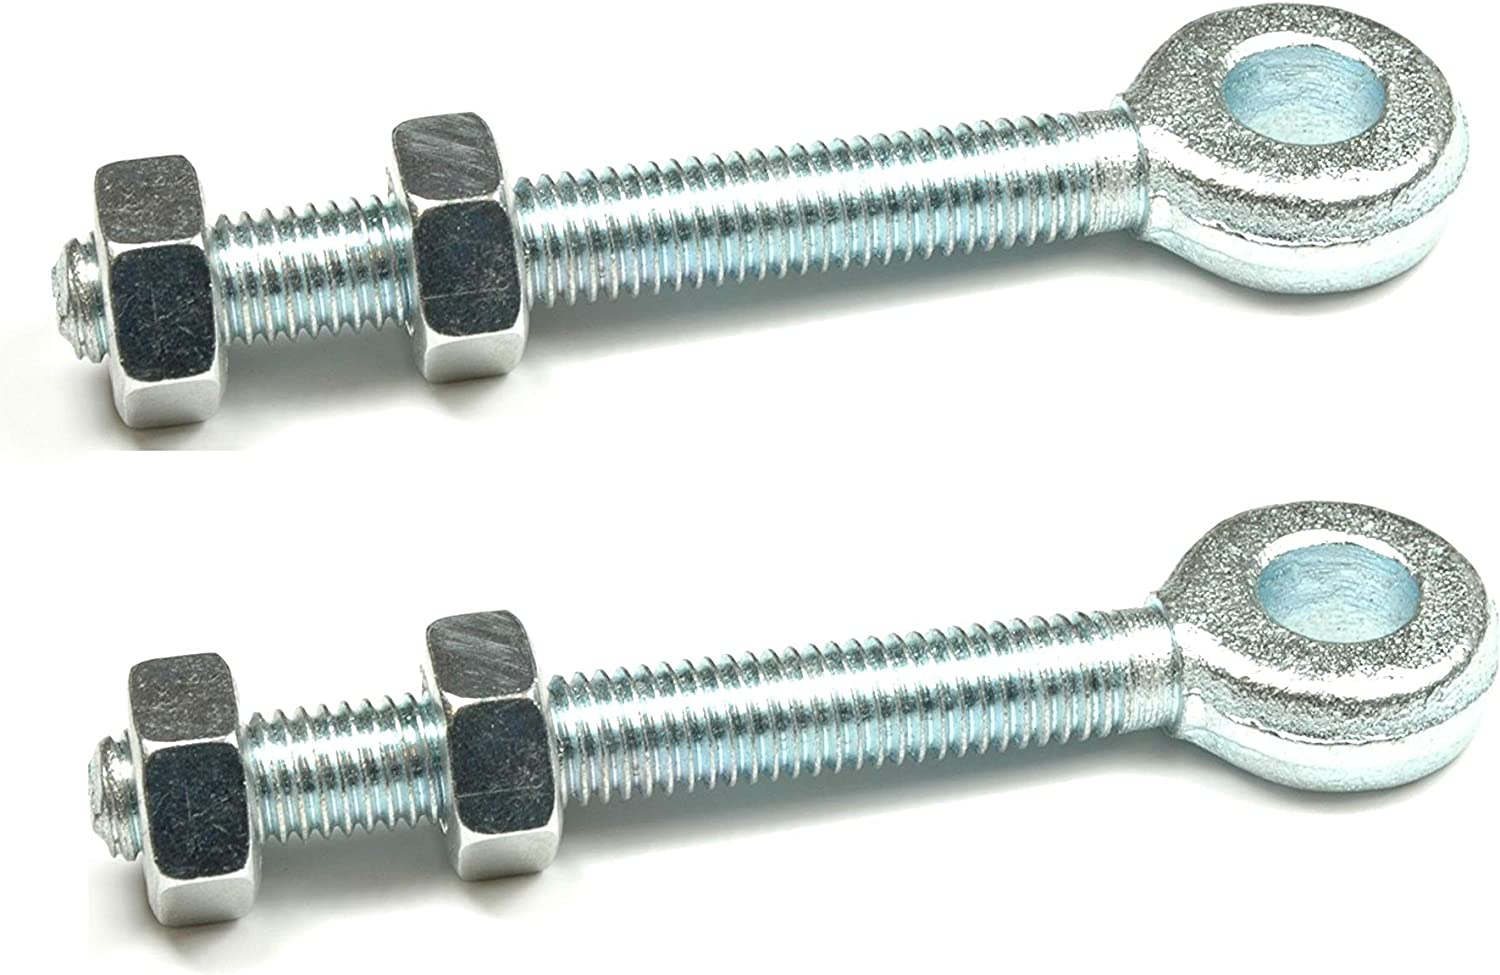 THREADED BOLTS EYES GALVANISED FOR 10 12 16 19 MM PINS 11 13  17 20 MM HOLE SIZE